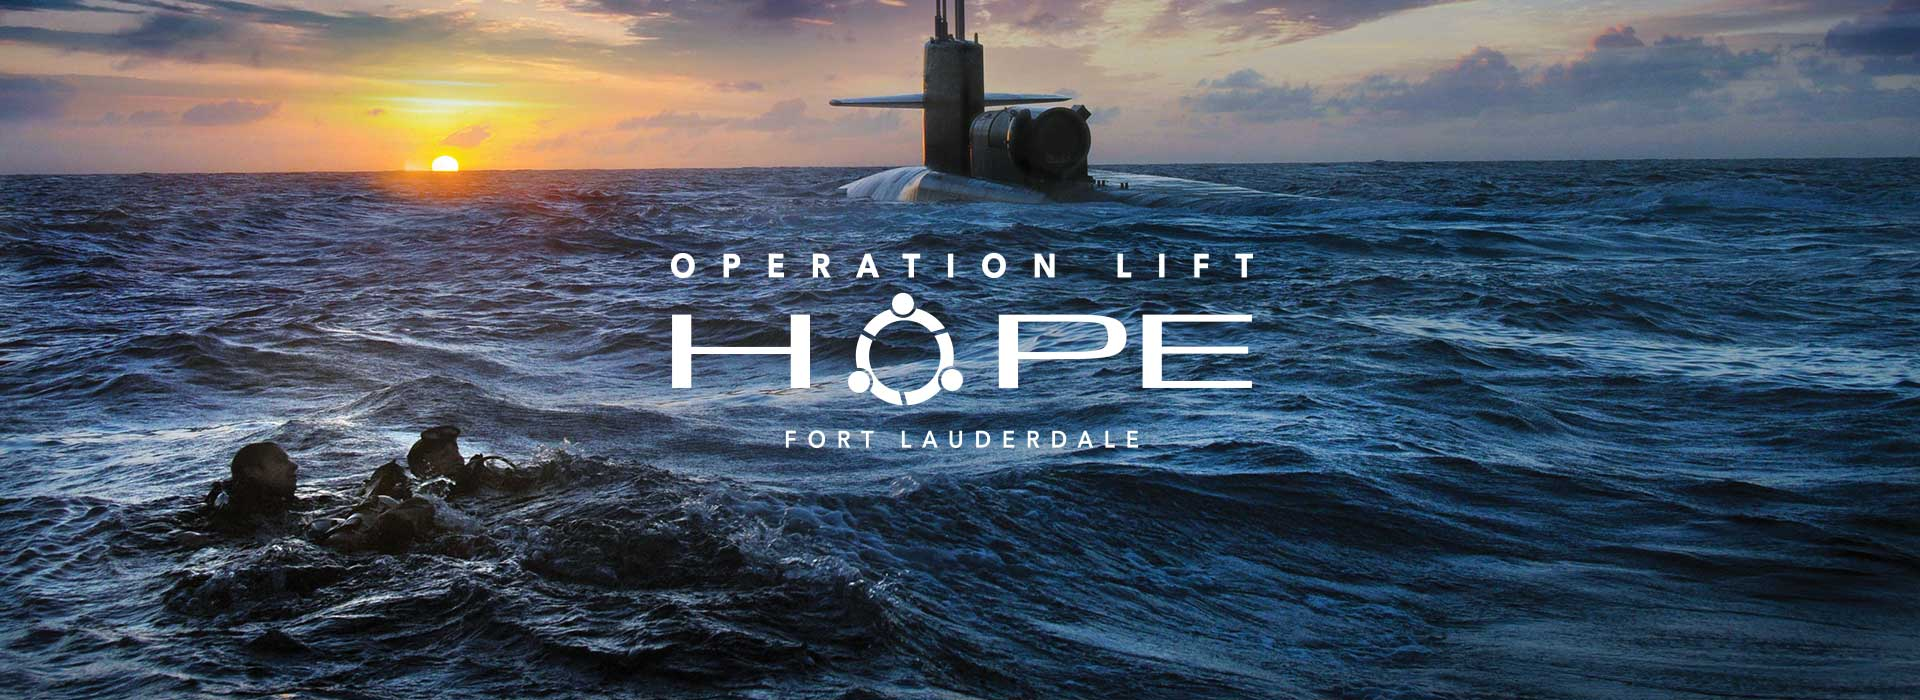 Operation Lift Hope